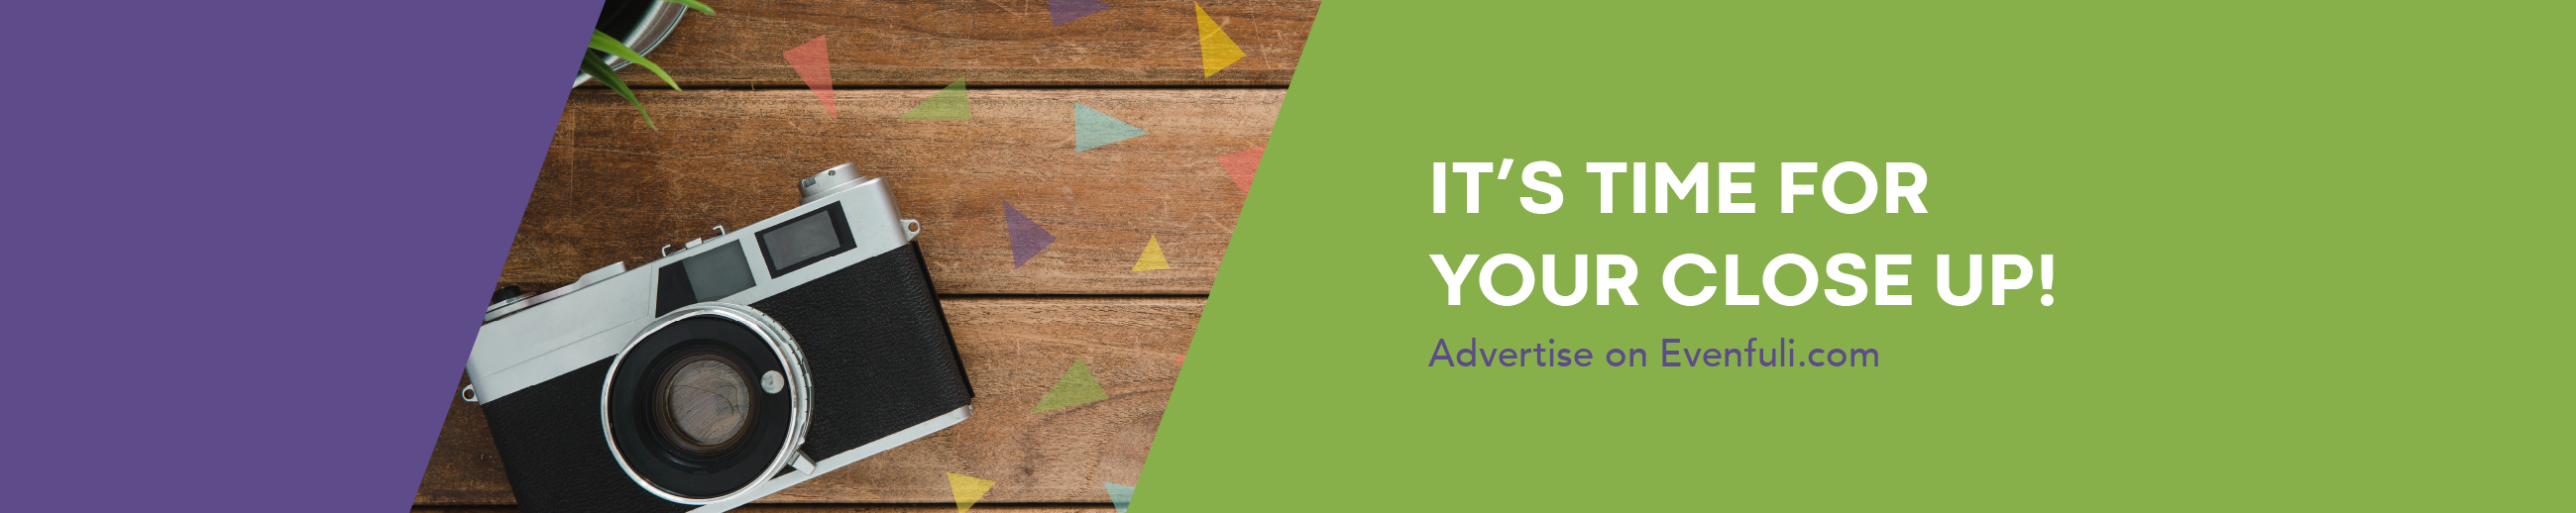 Advertise on Eventfuli